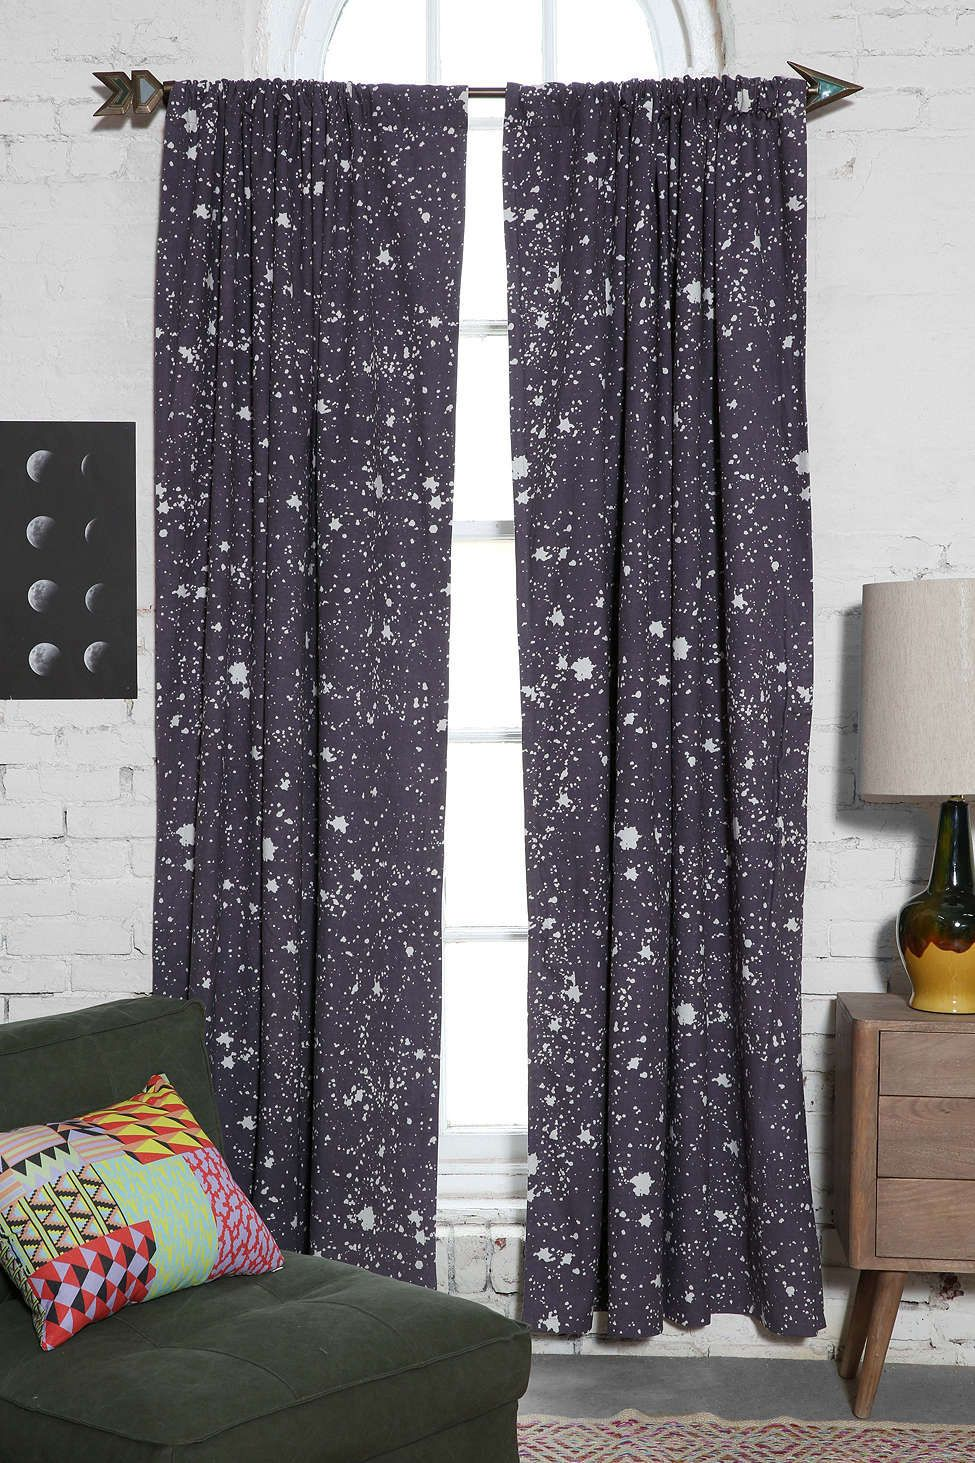 ideas curtains image of home curtain charter pocket design cool rod